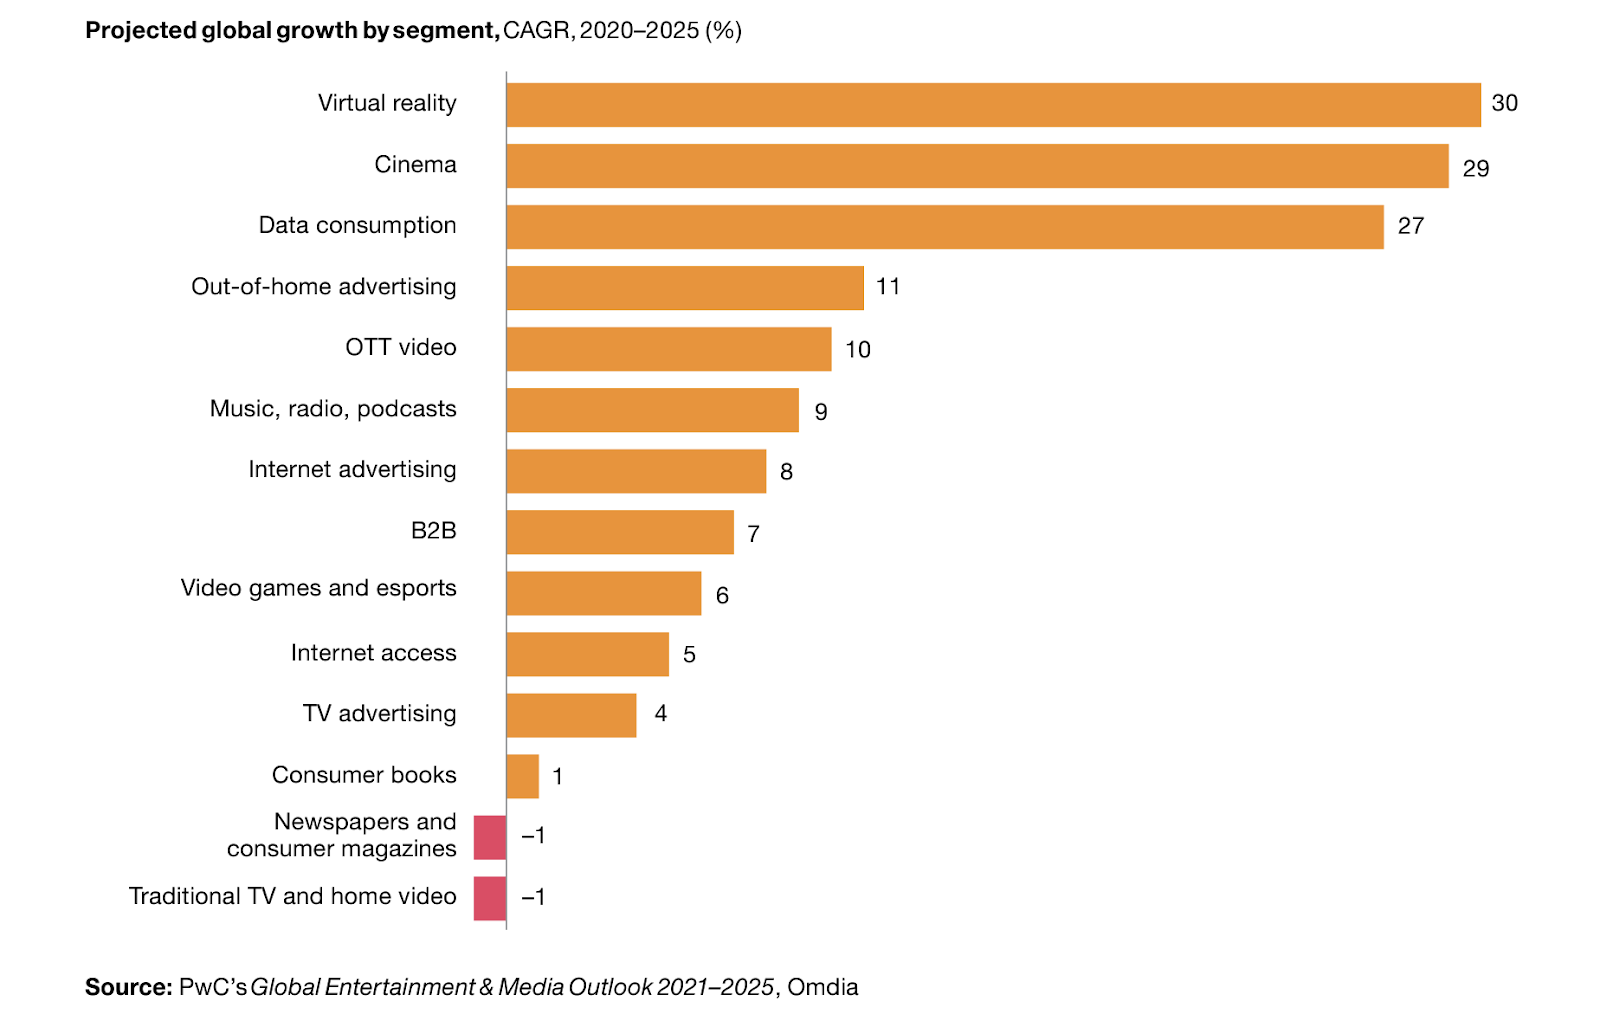 this chart shows the predicted growth across a variety of different sectors